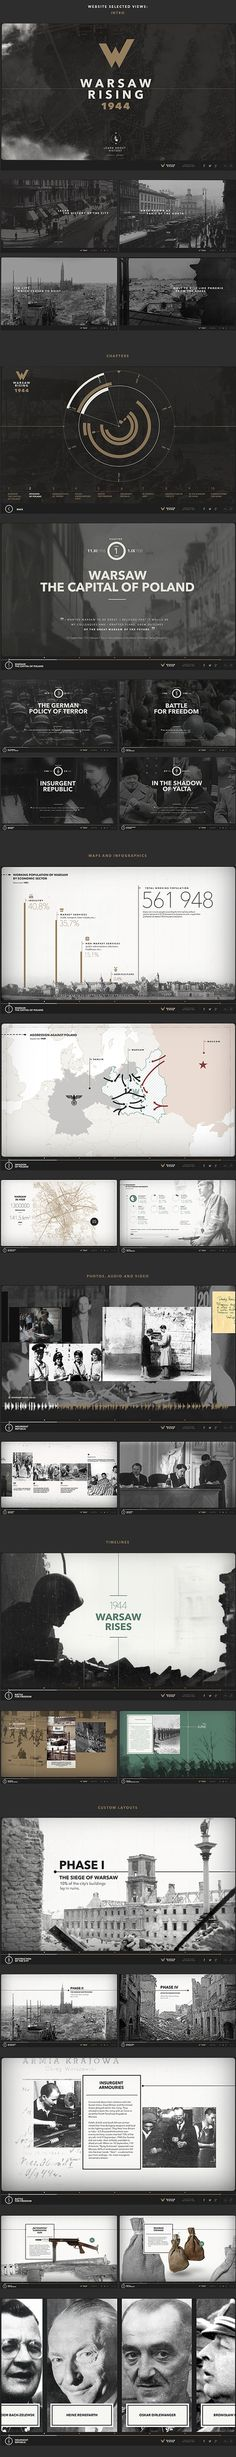 Warsaw Rising on Behance #white #design #black #layout #web